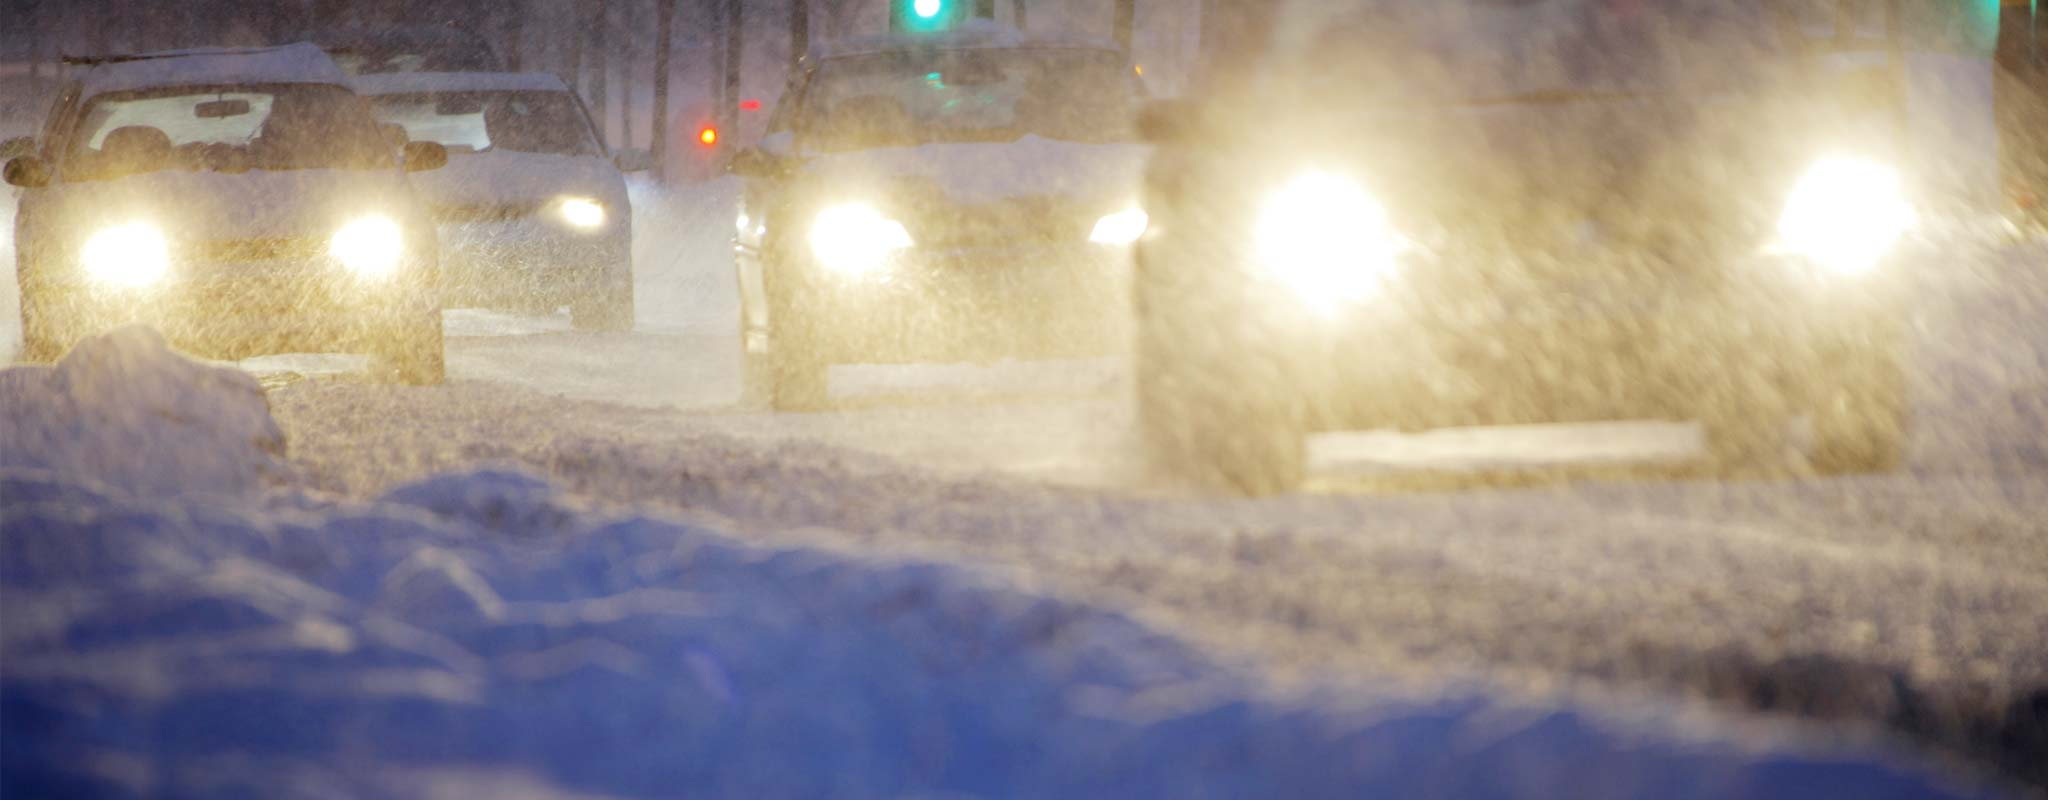 Headlights shining on a snowy winter road.